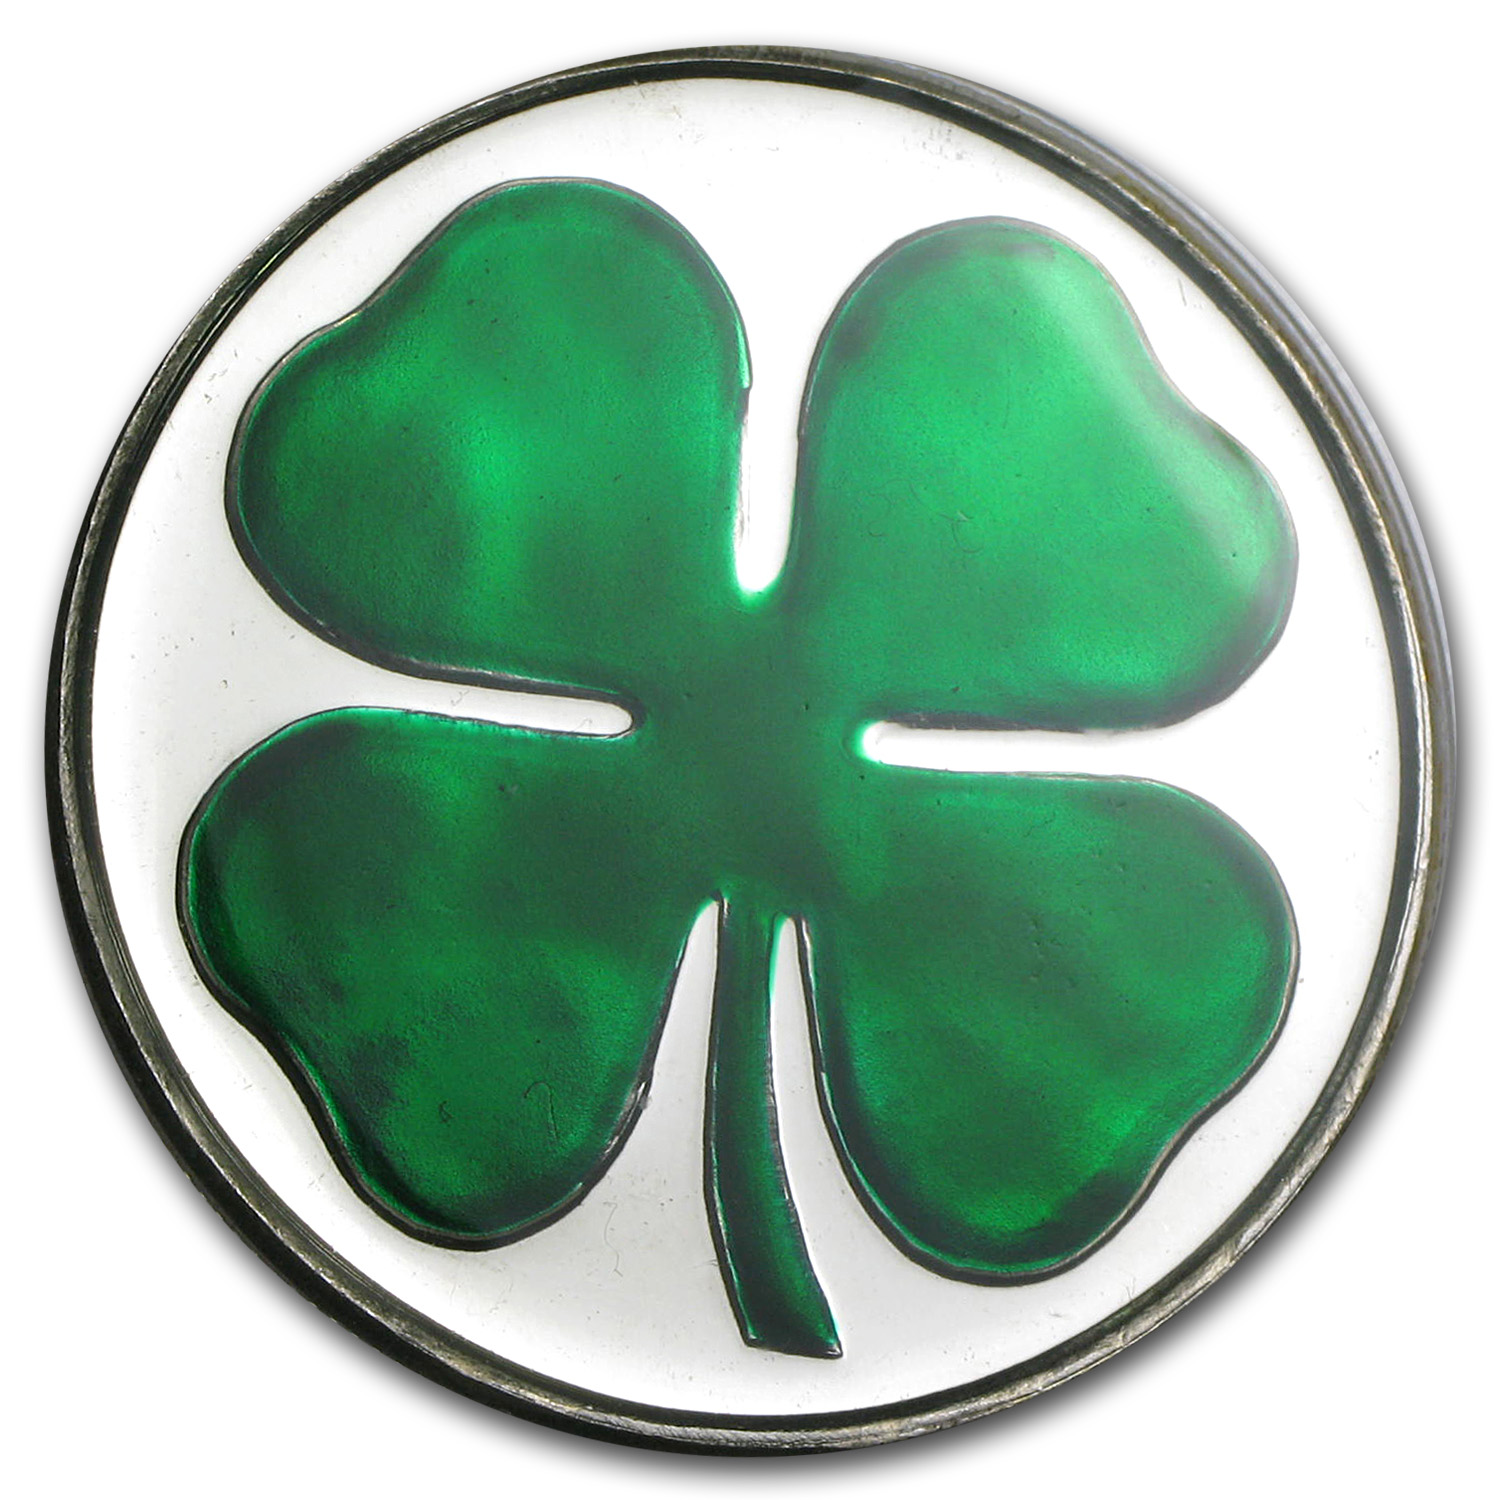 1 oz Silver Round - Four Leaf Clover (Enameled, w/Box & Capsule)